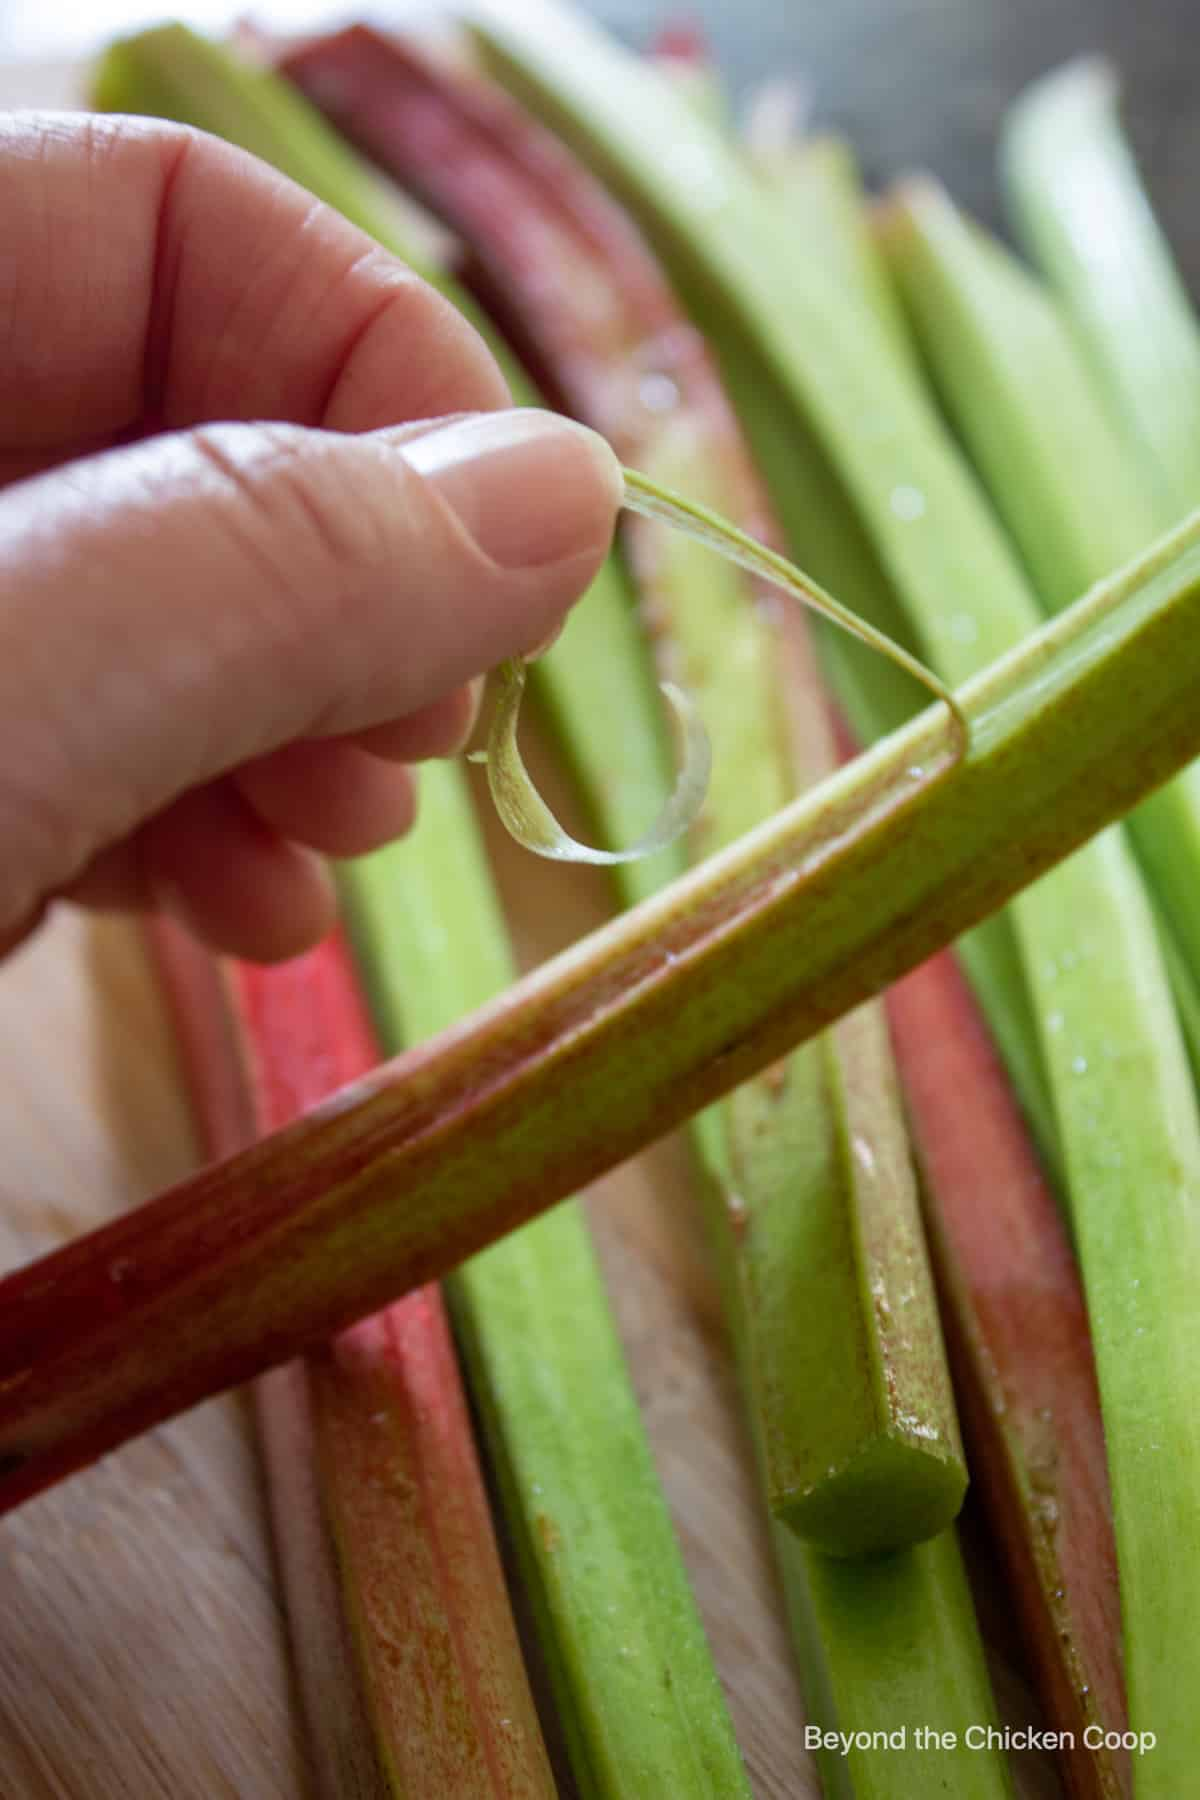 Pulling a string off a stalk of rhubarb.